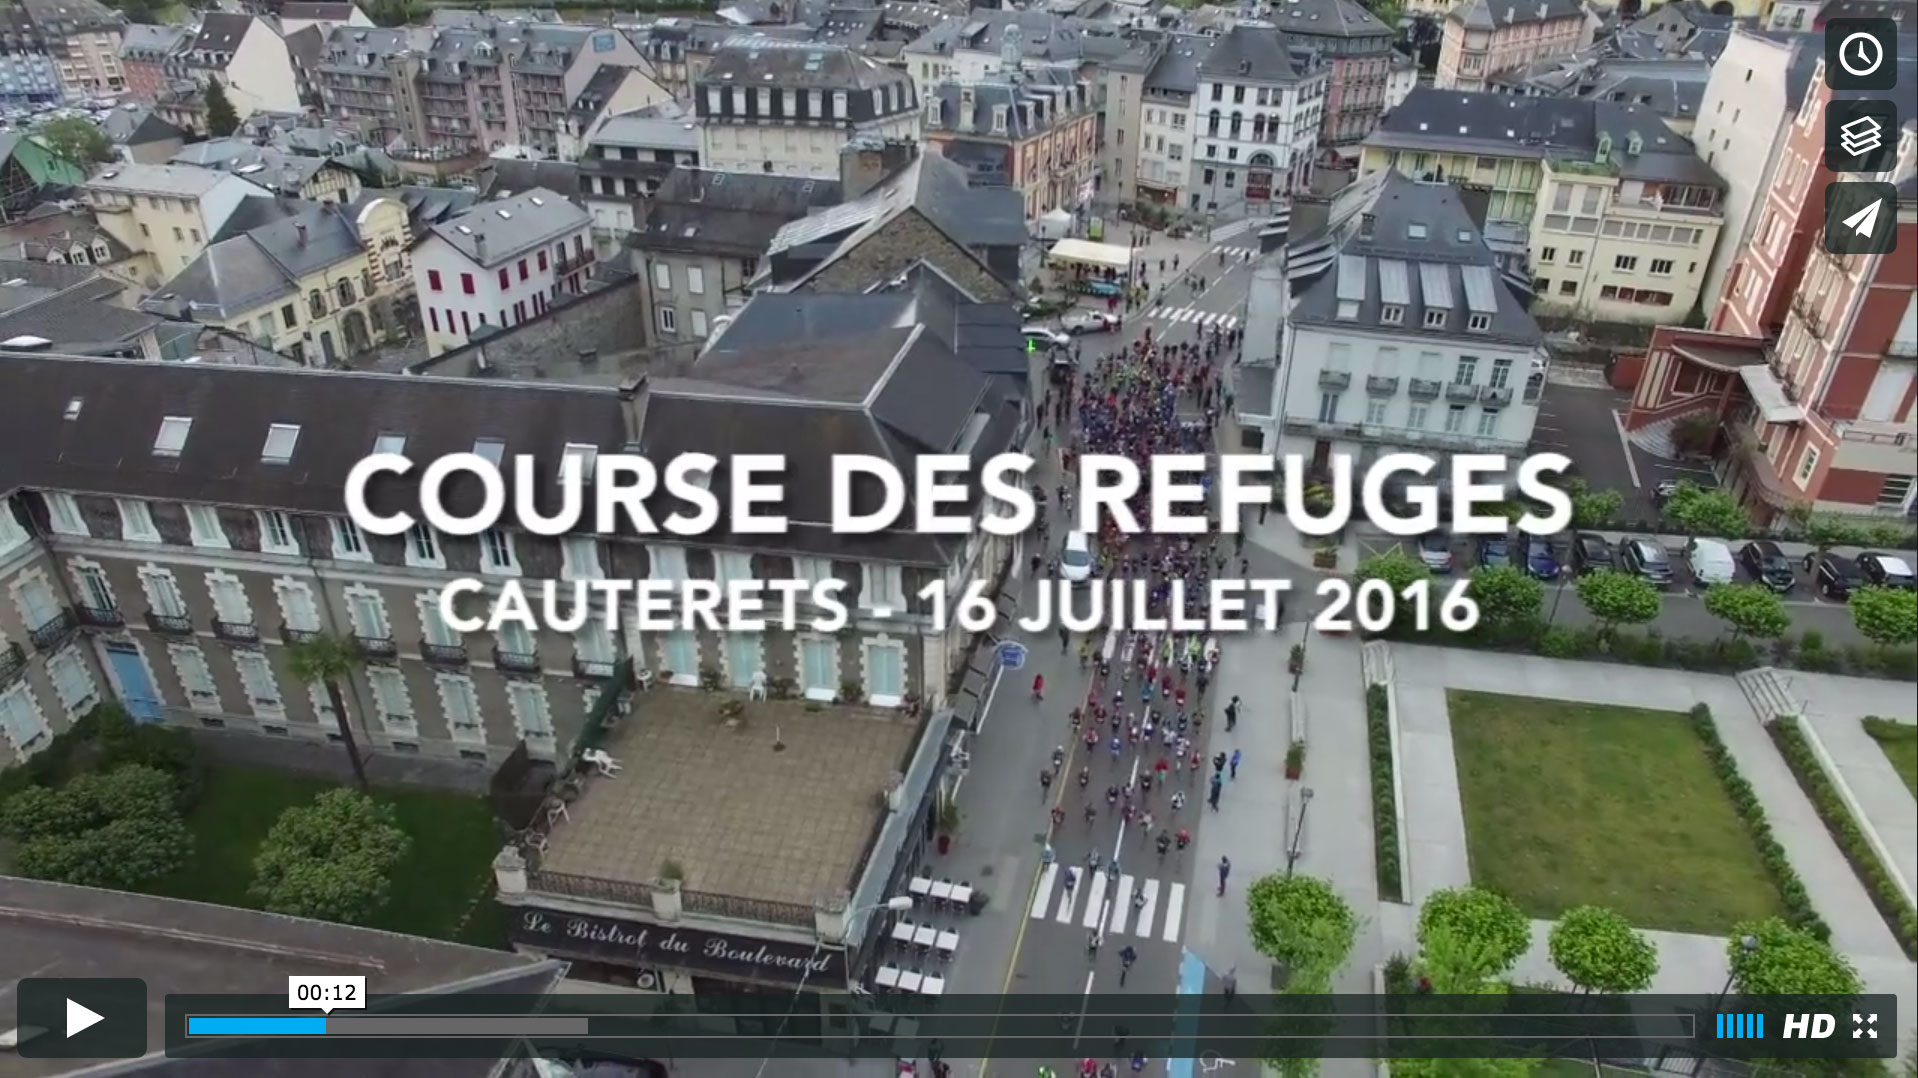 Course des Refuges 2016.